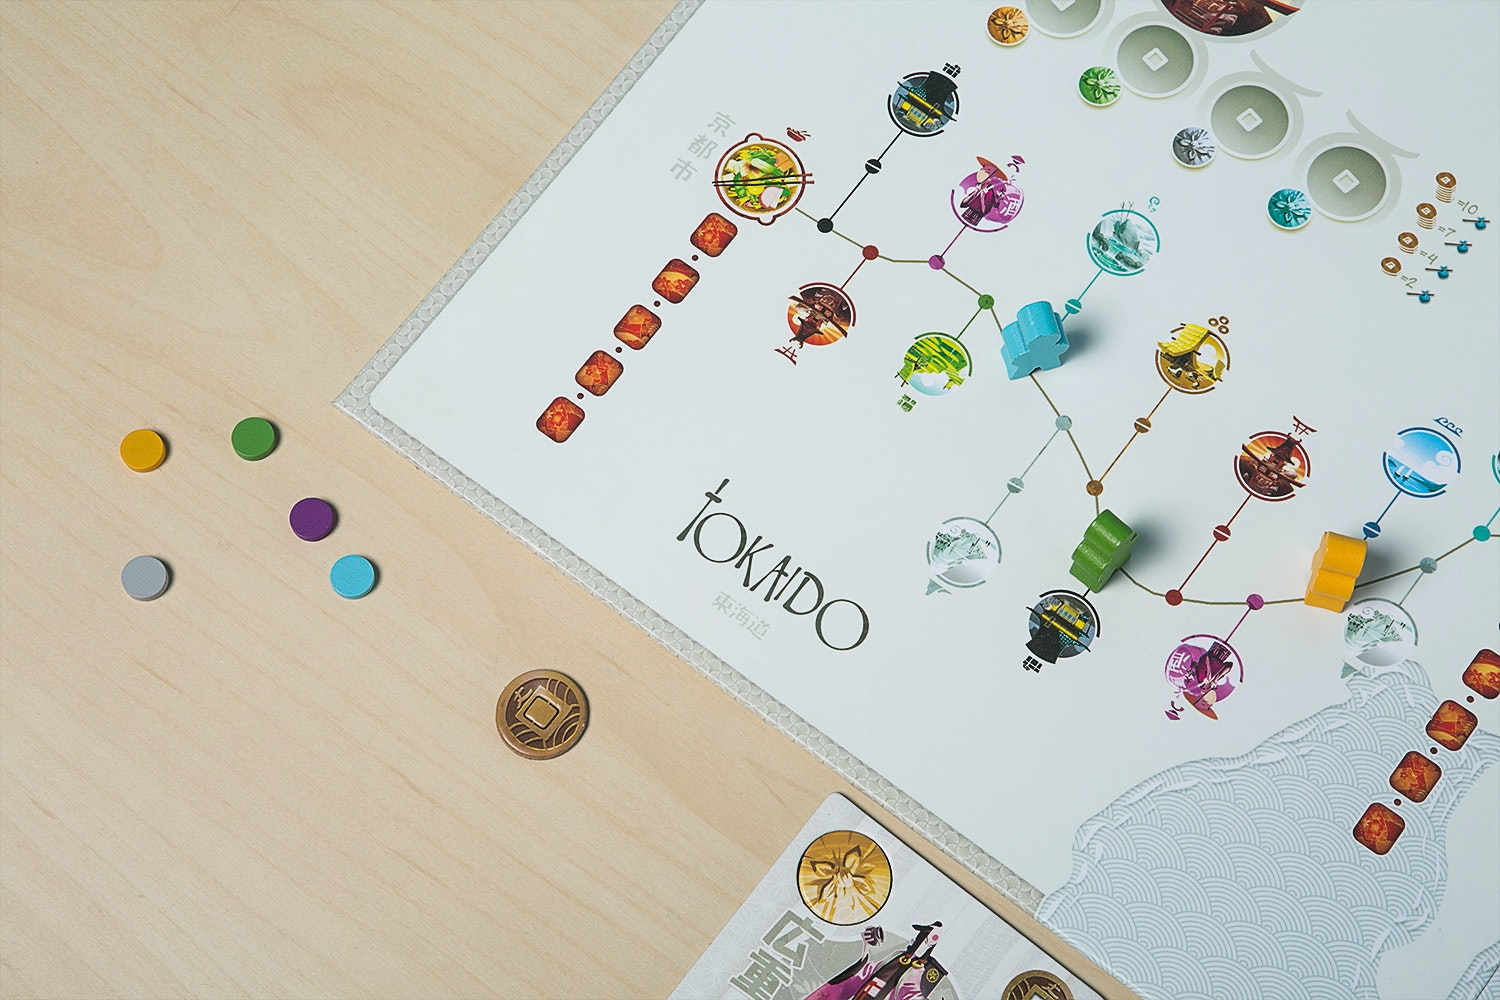 Tokaido Board Game Bundle